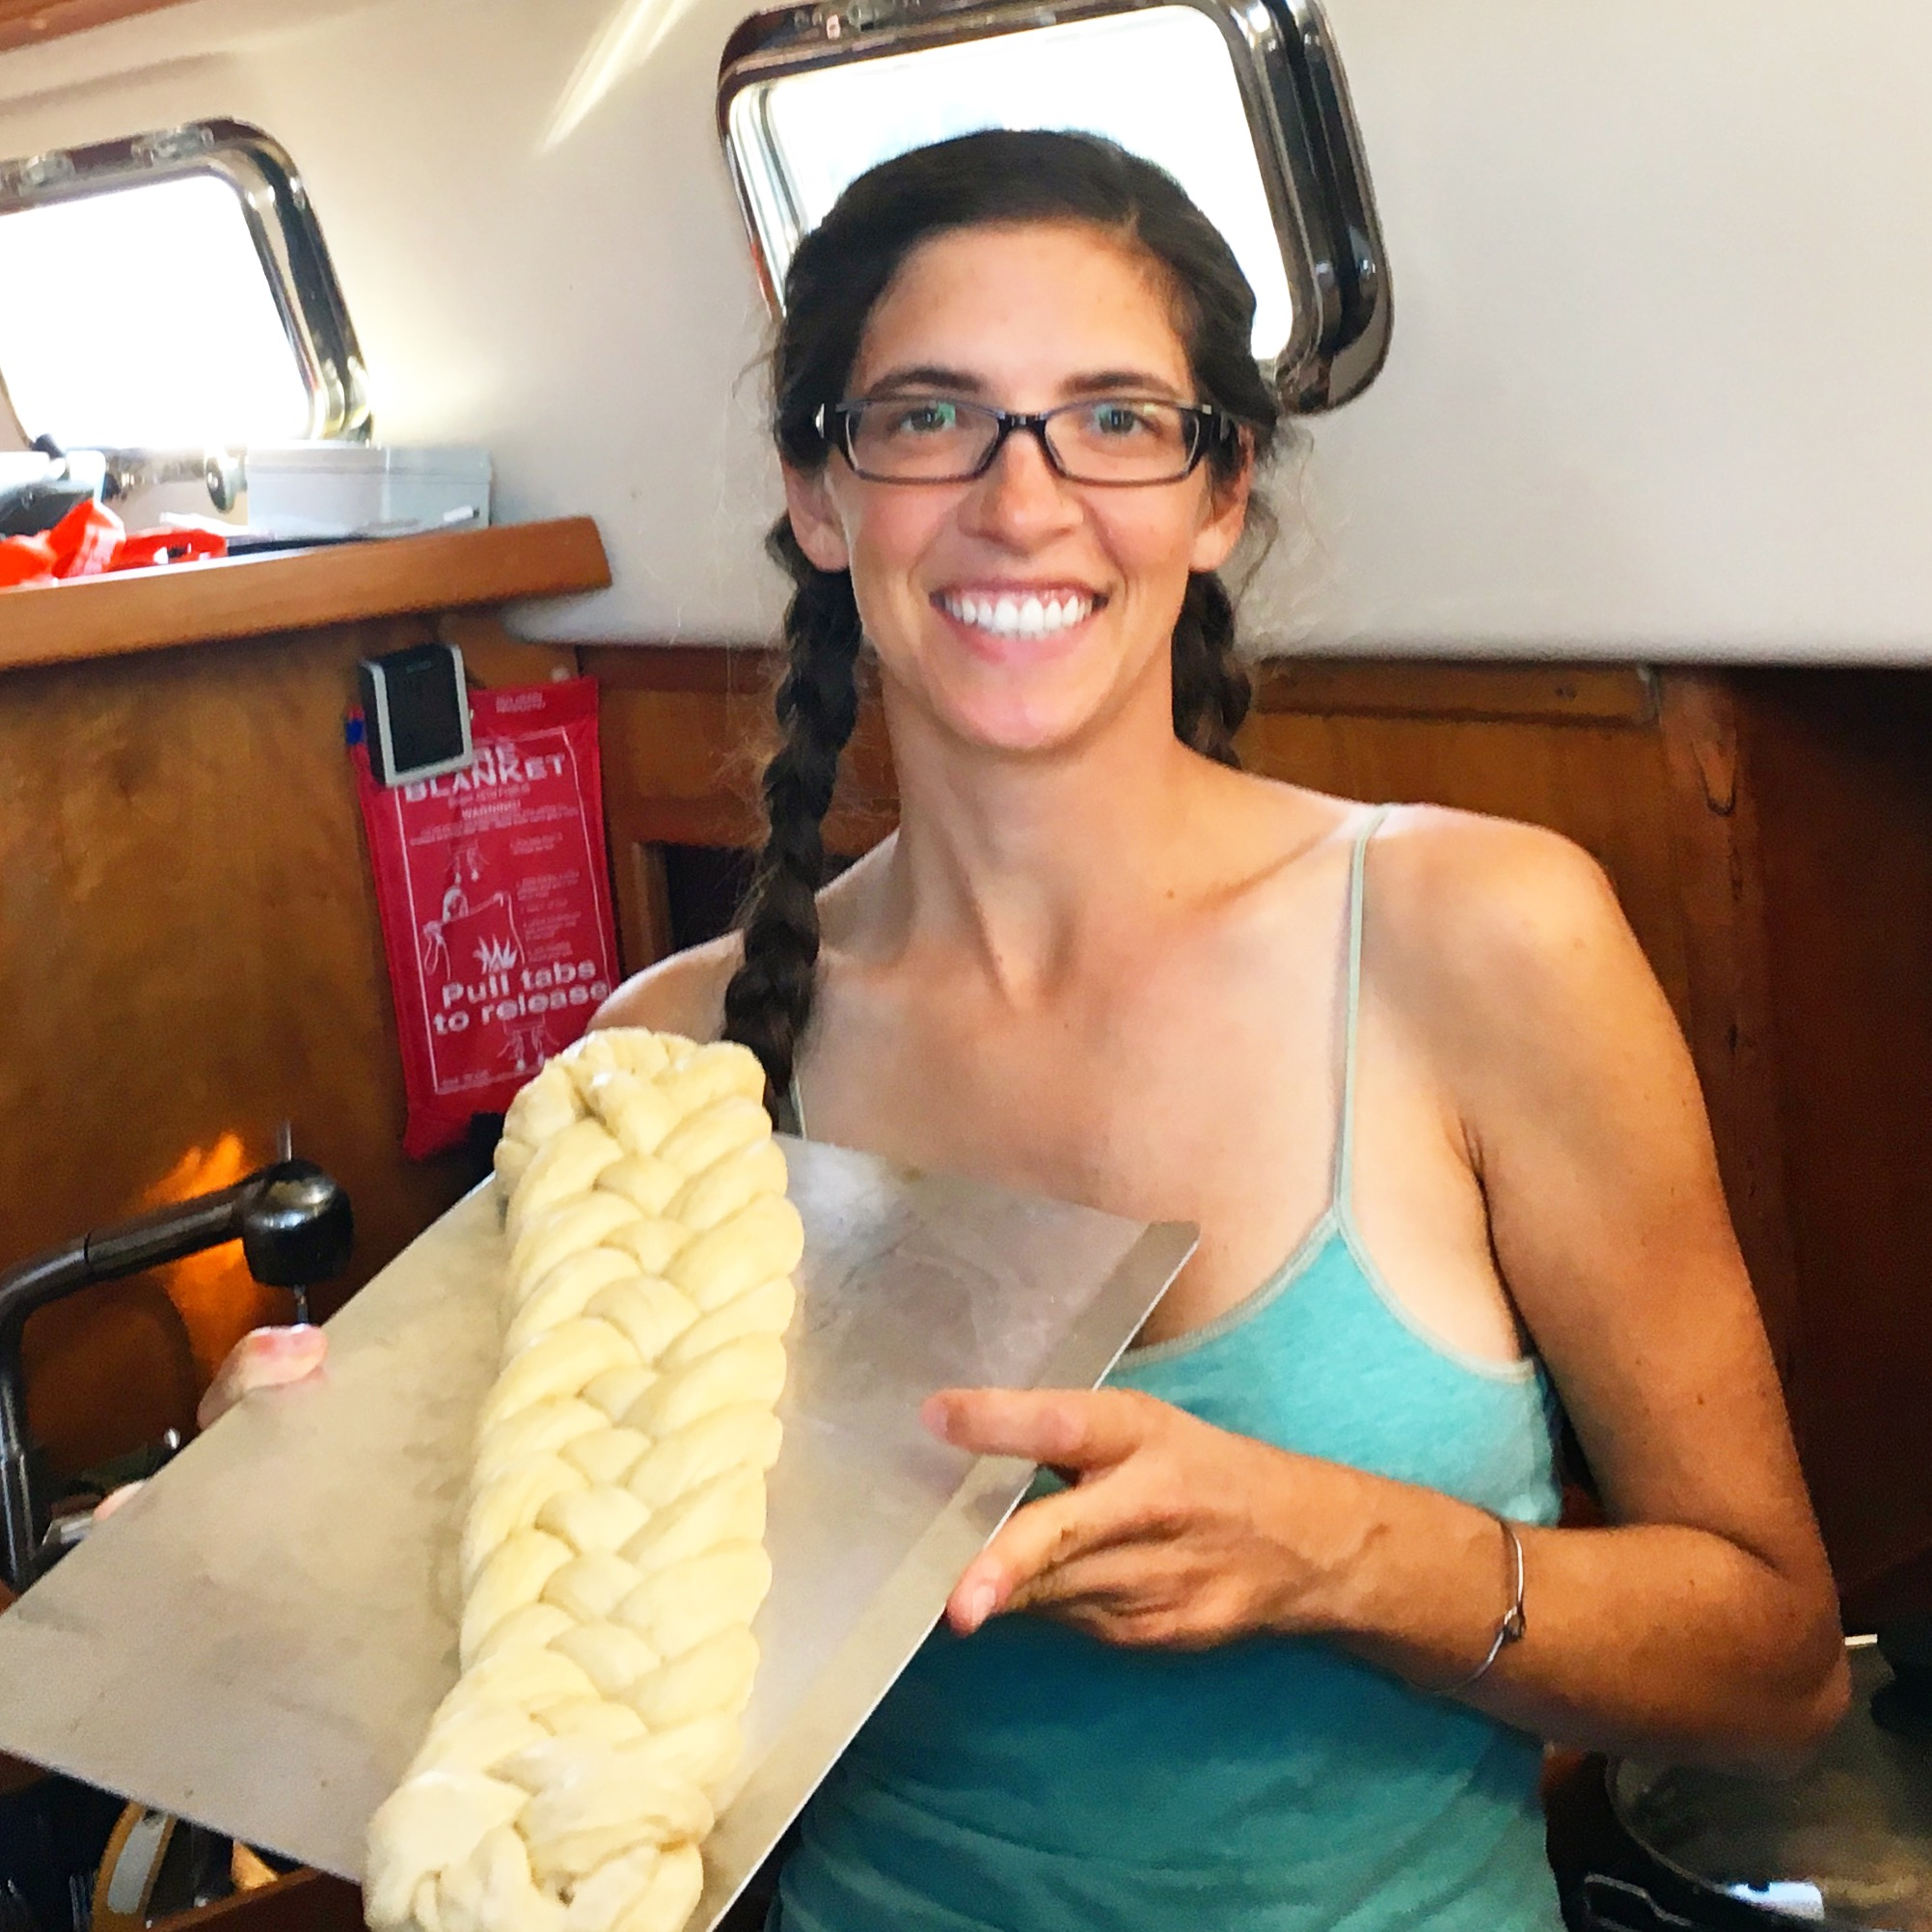 An over-proved, 6 strand, braided challah that inspired Sea Yawl